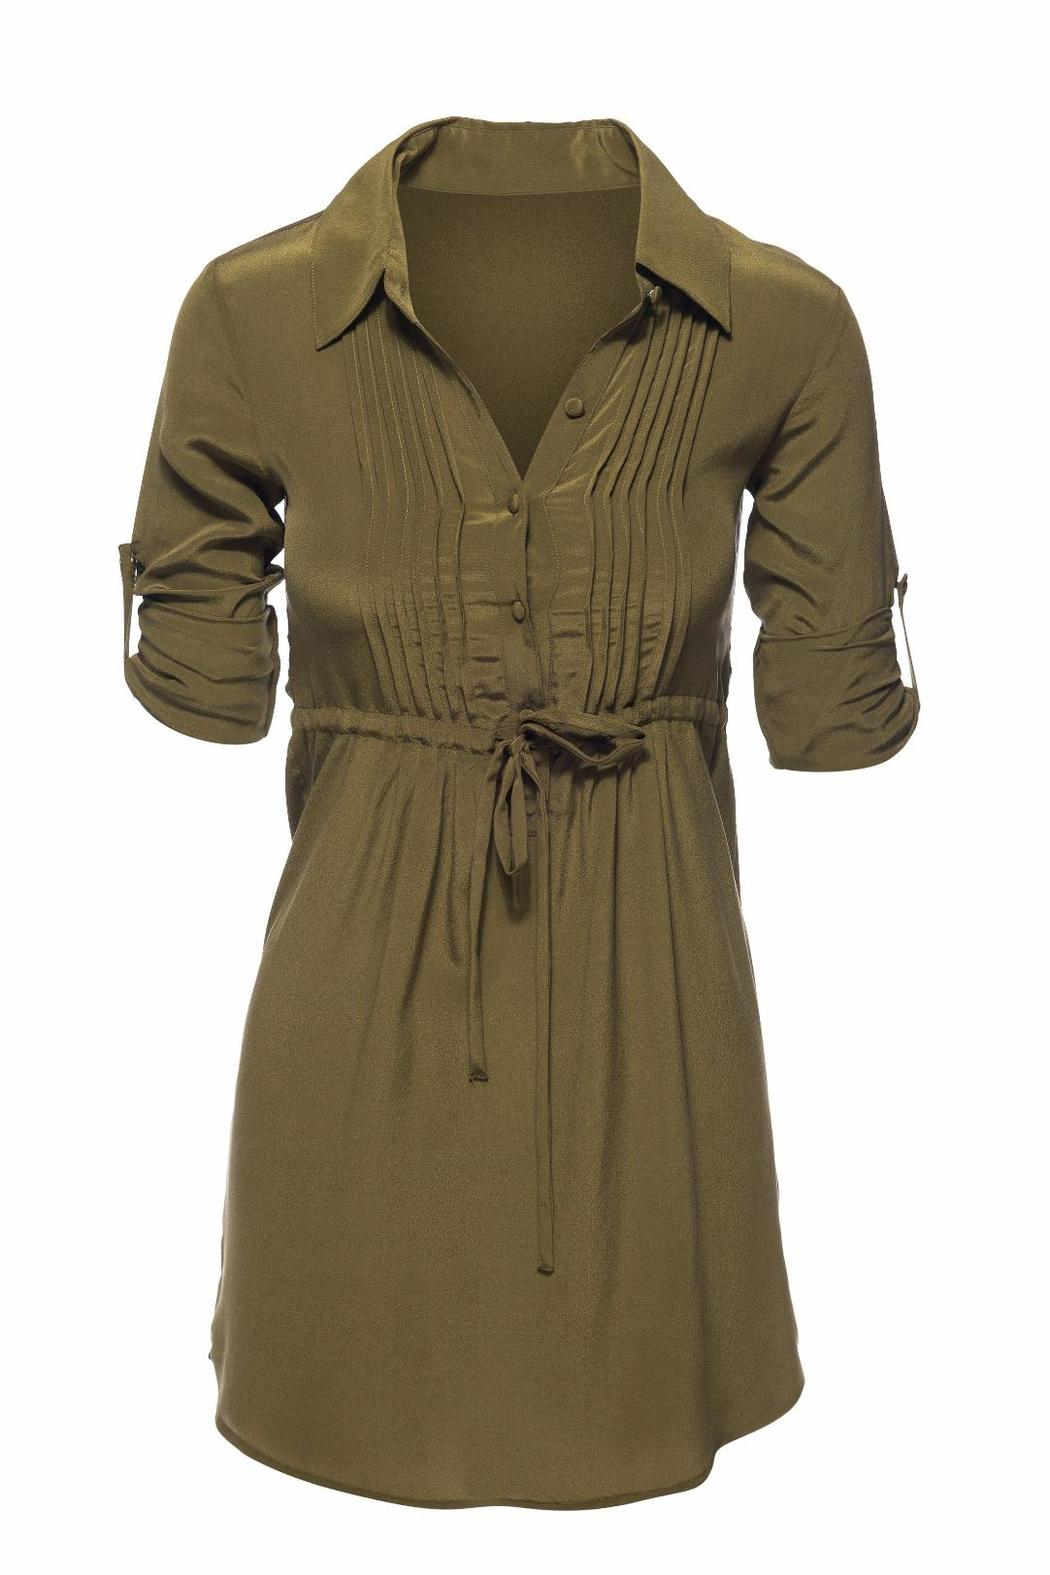 Chaser Silk Shirt Dress From Indiana By The Bungalow Lv Shoptiques